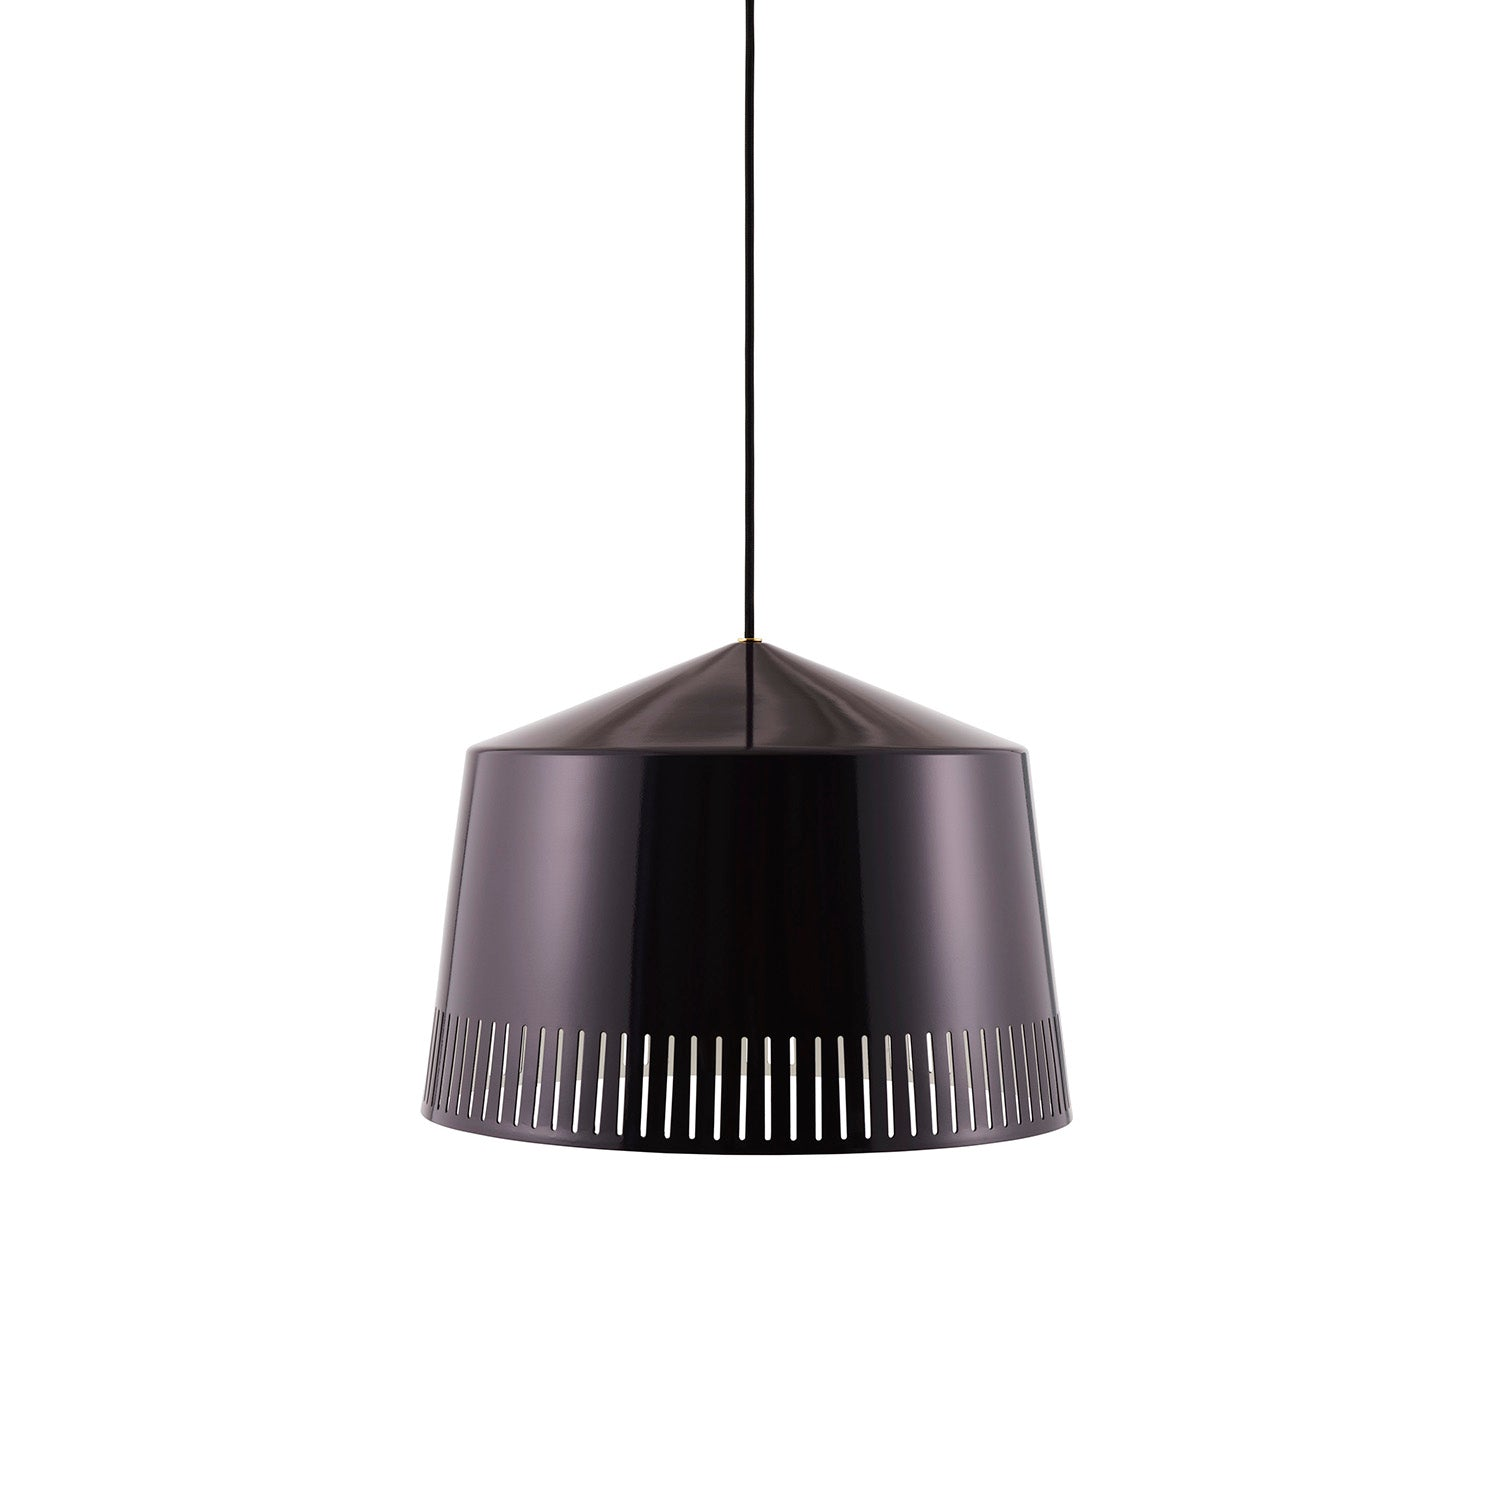 Tivoli Collection: Toli Lamp